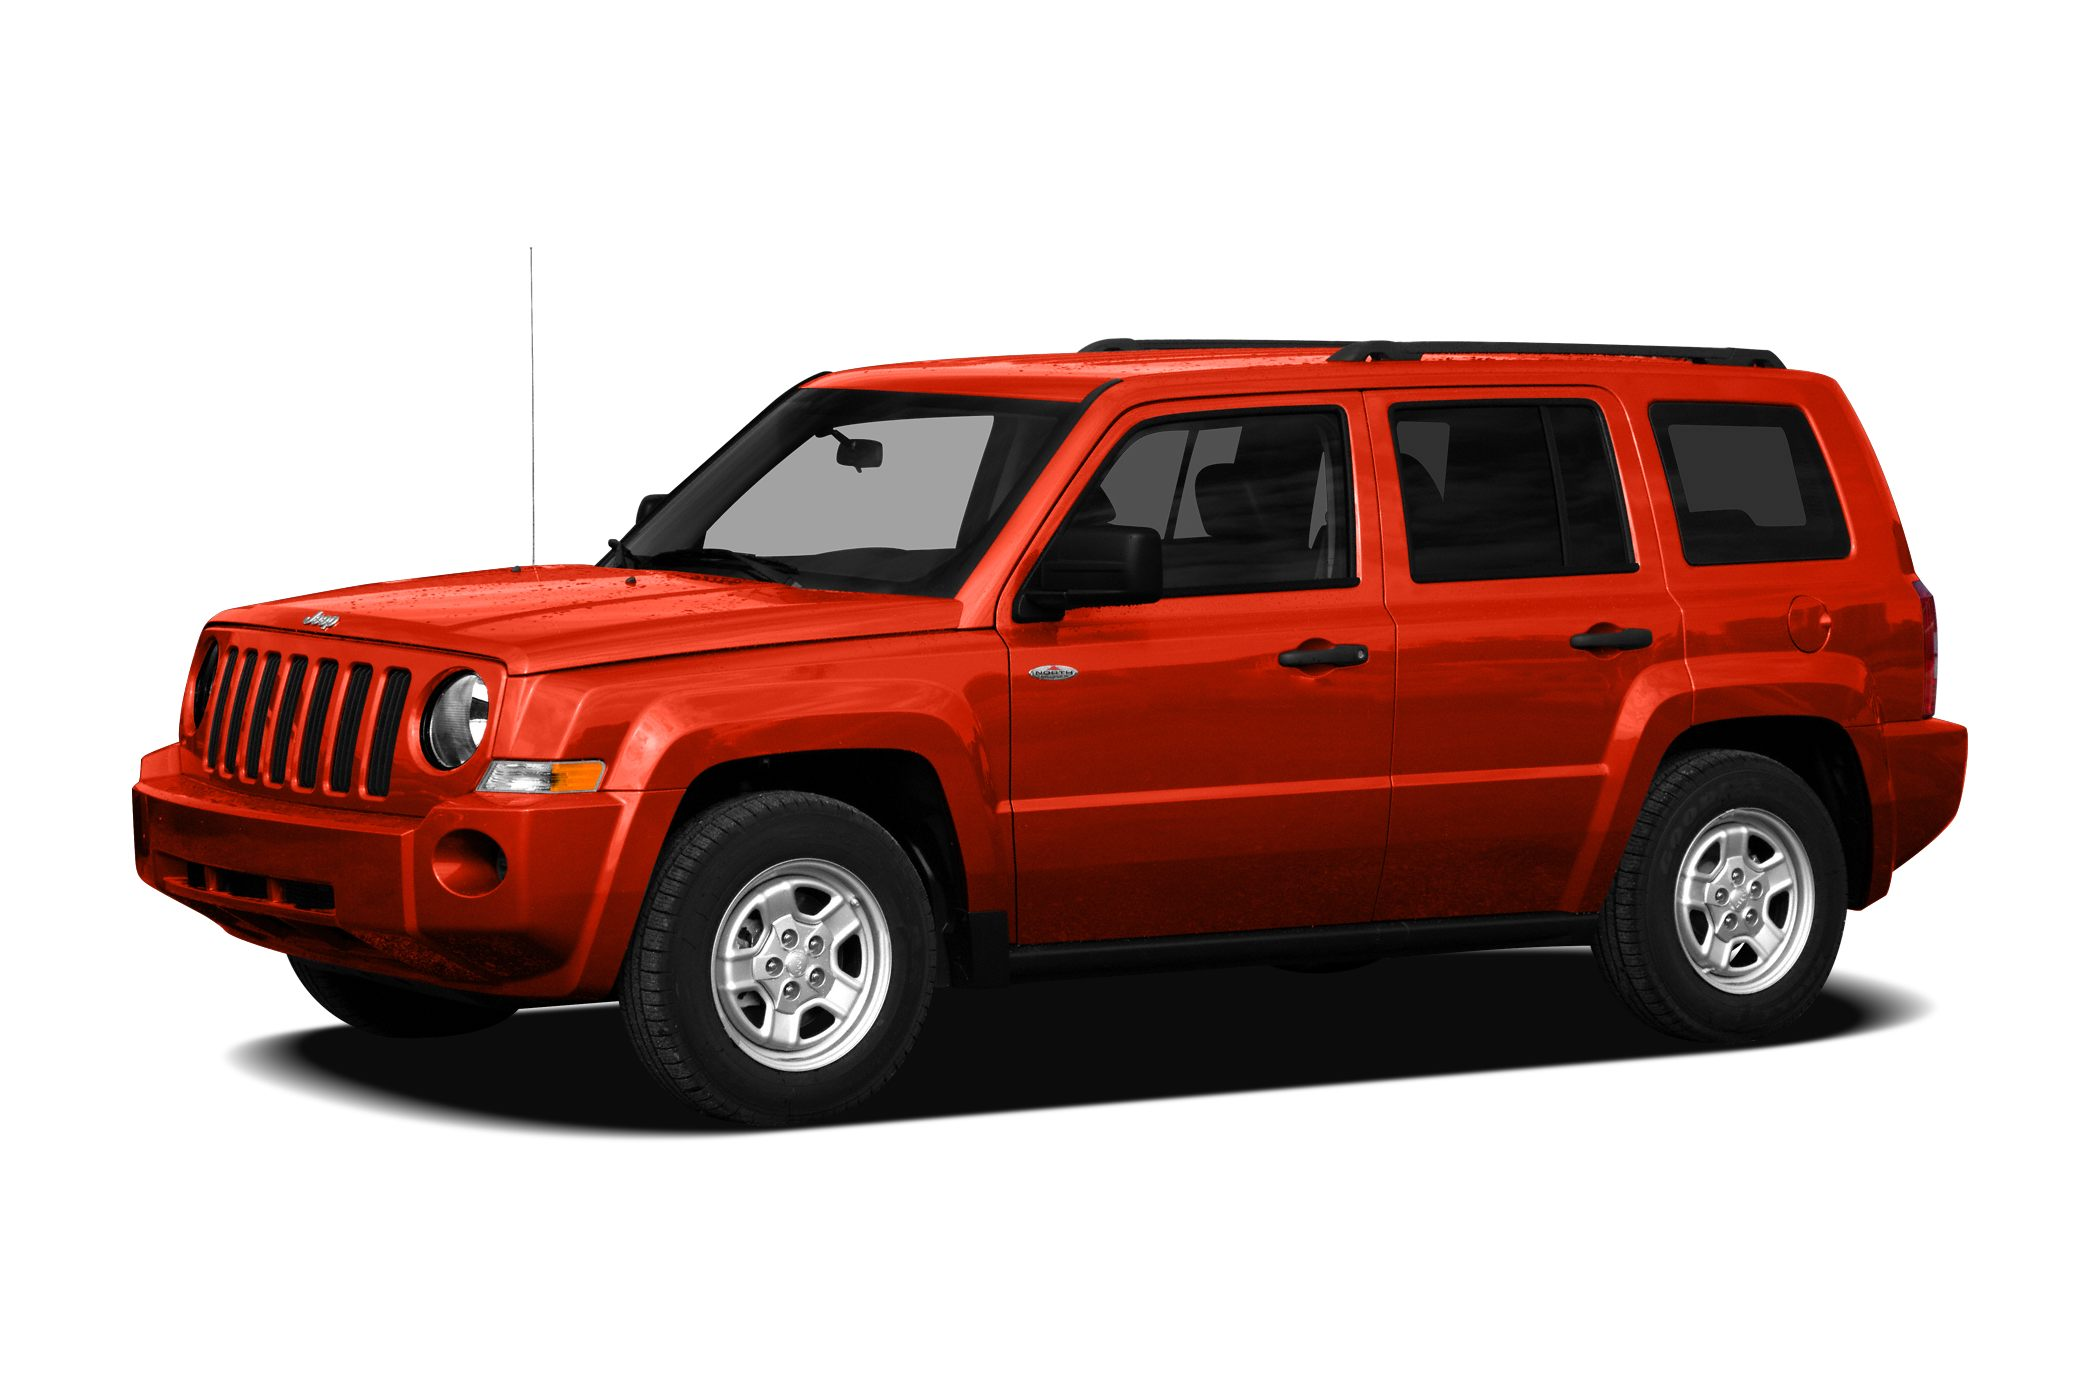 2009 Jeep Patriot Sport OUR PRICESYoure probably wondering why our prices are so much lower than